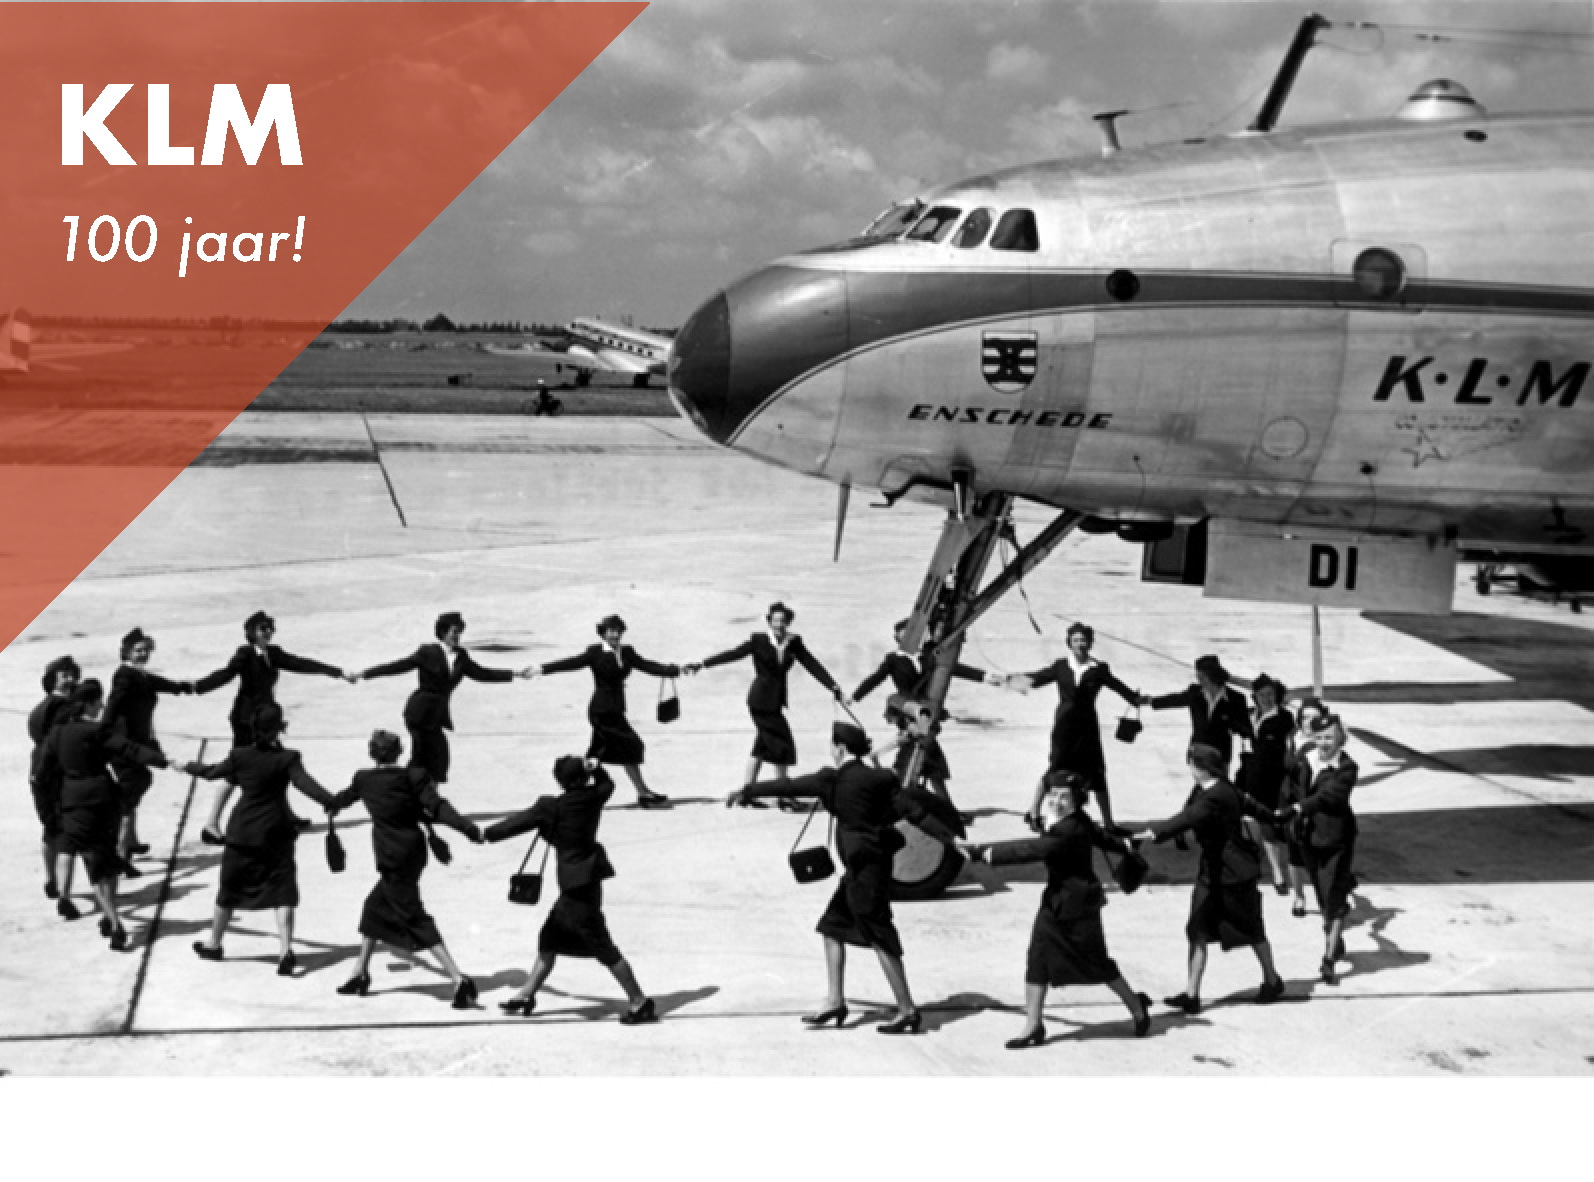 KLM airline company 100 years.   See more